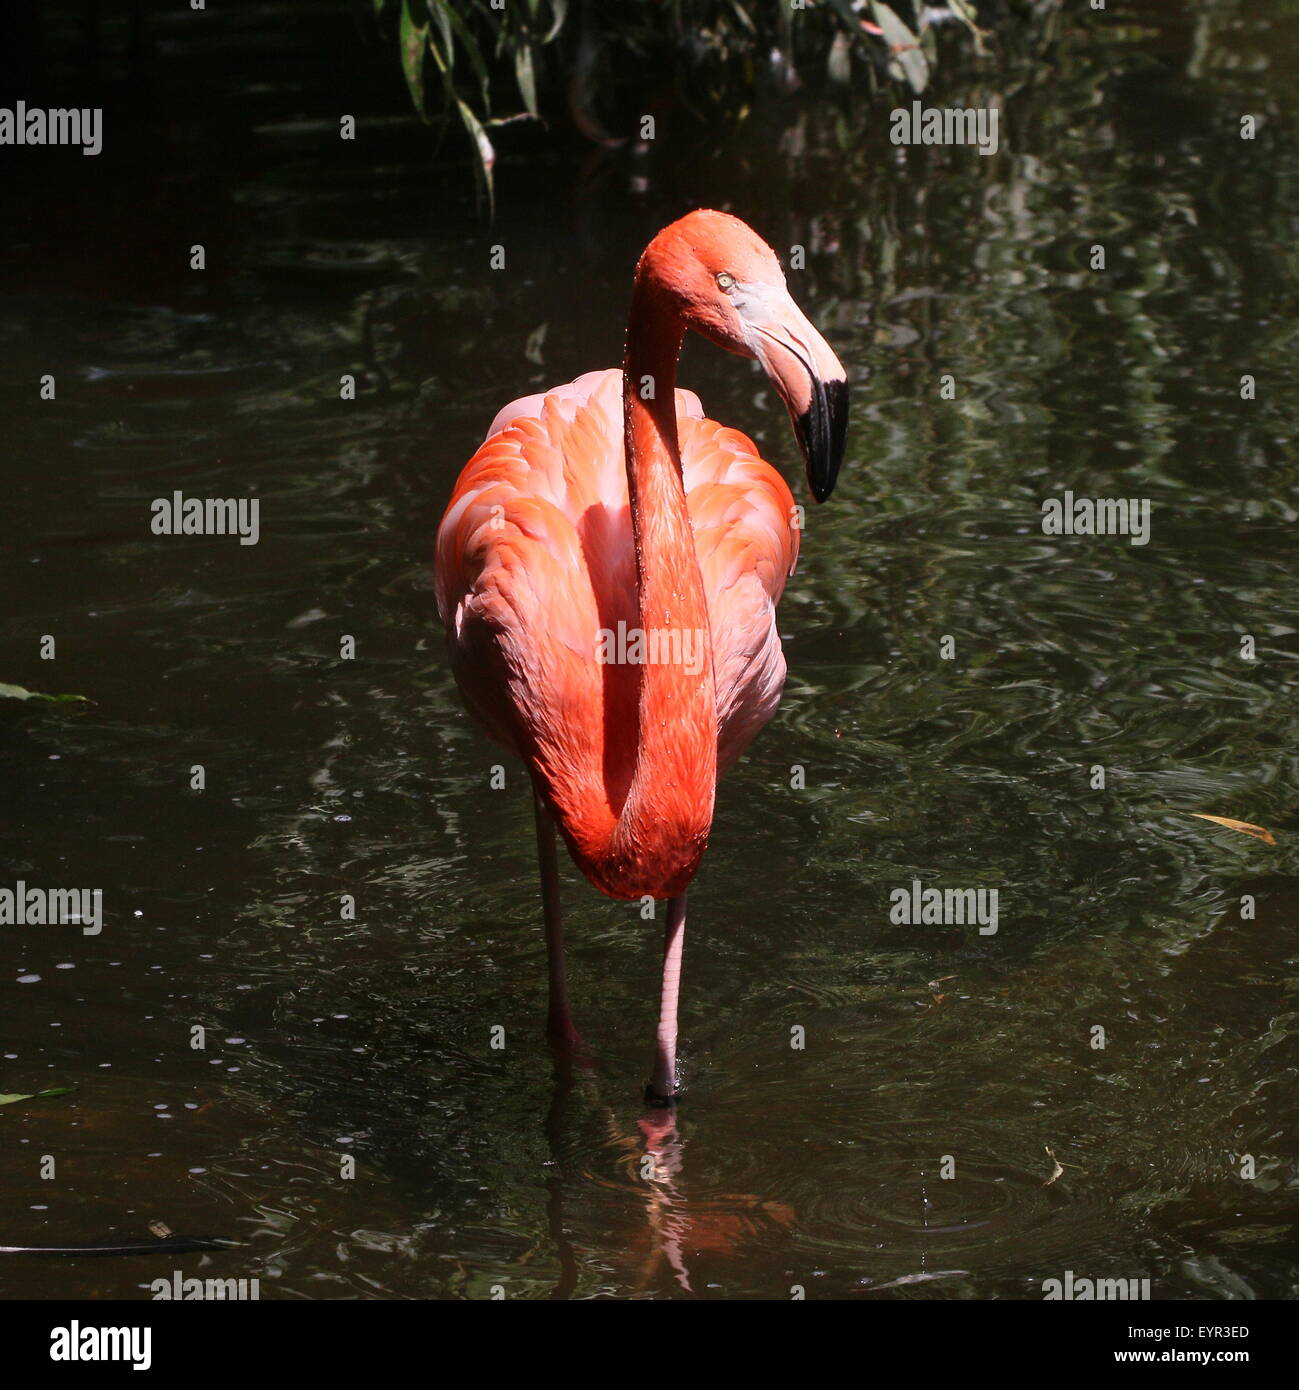 American or Caribbean flamingo (Phoenicopterus ruber) foraging in a stream, facing camera - Stock Image